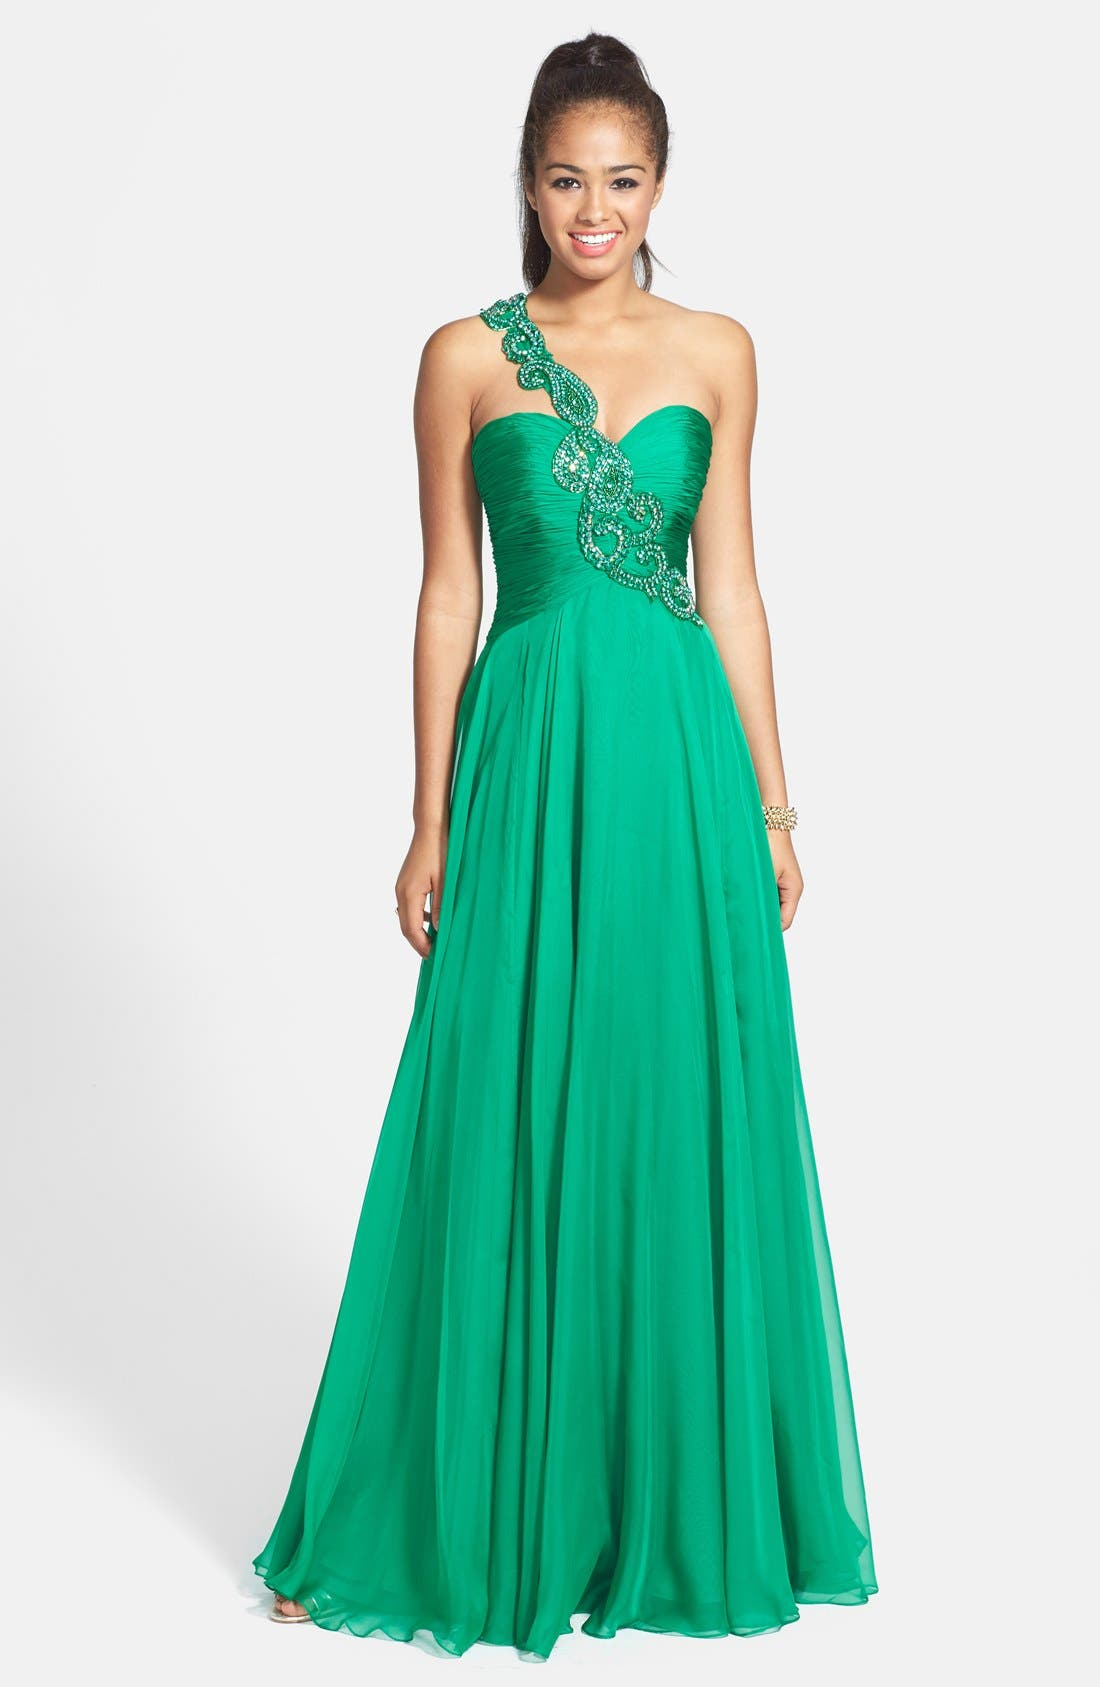 Main Image - Sherri Hill One Shoulder Embellished Chiffon Gown